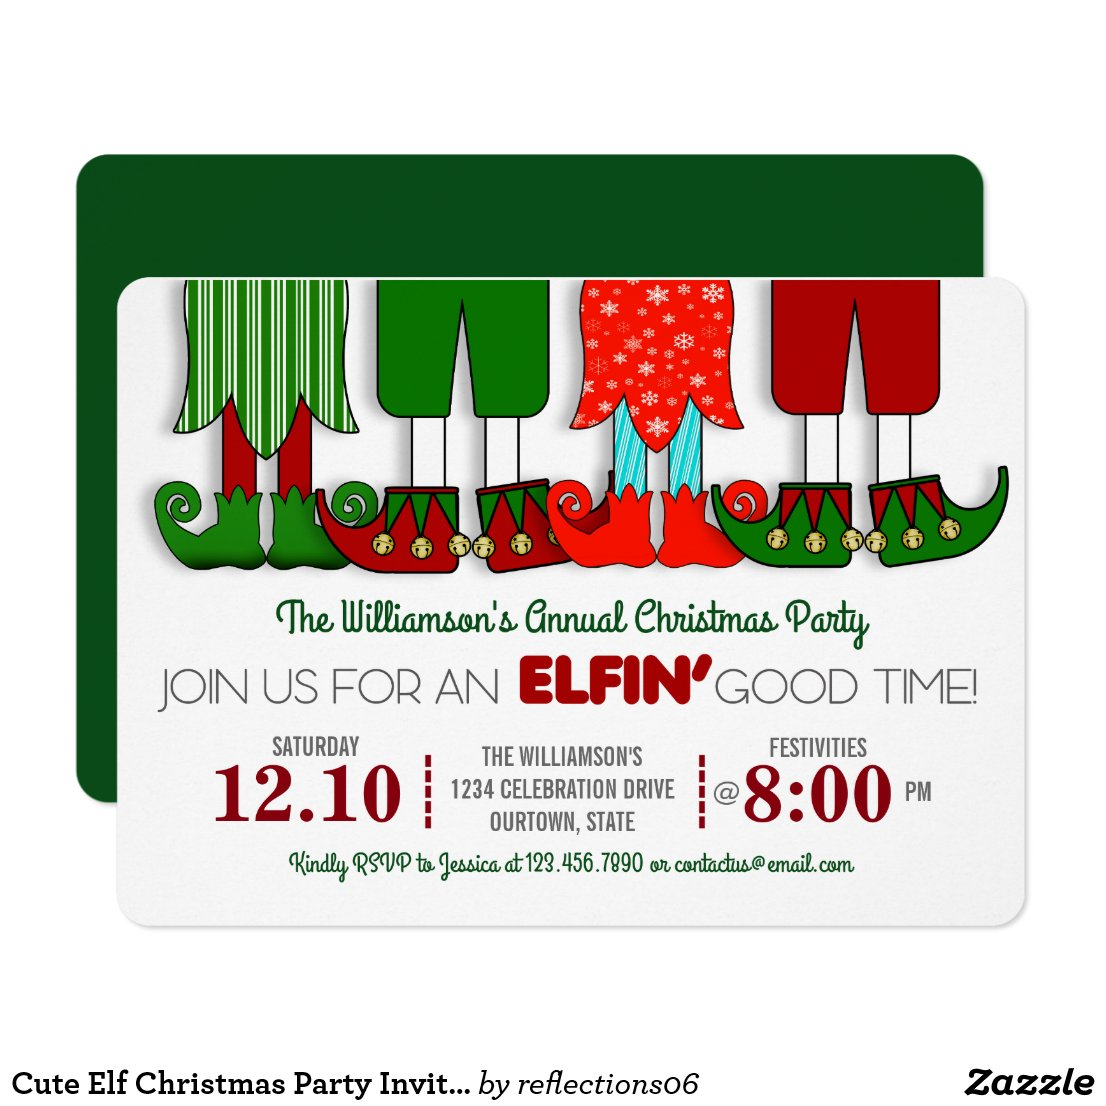 Cute Elf Christmas Party Invitations